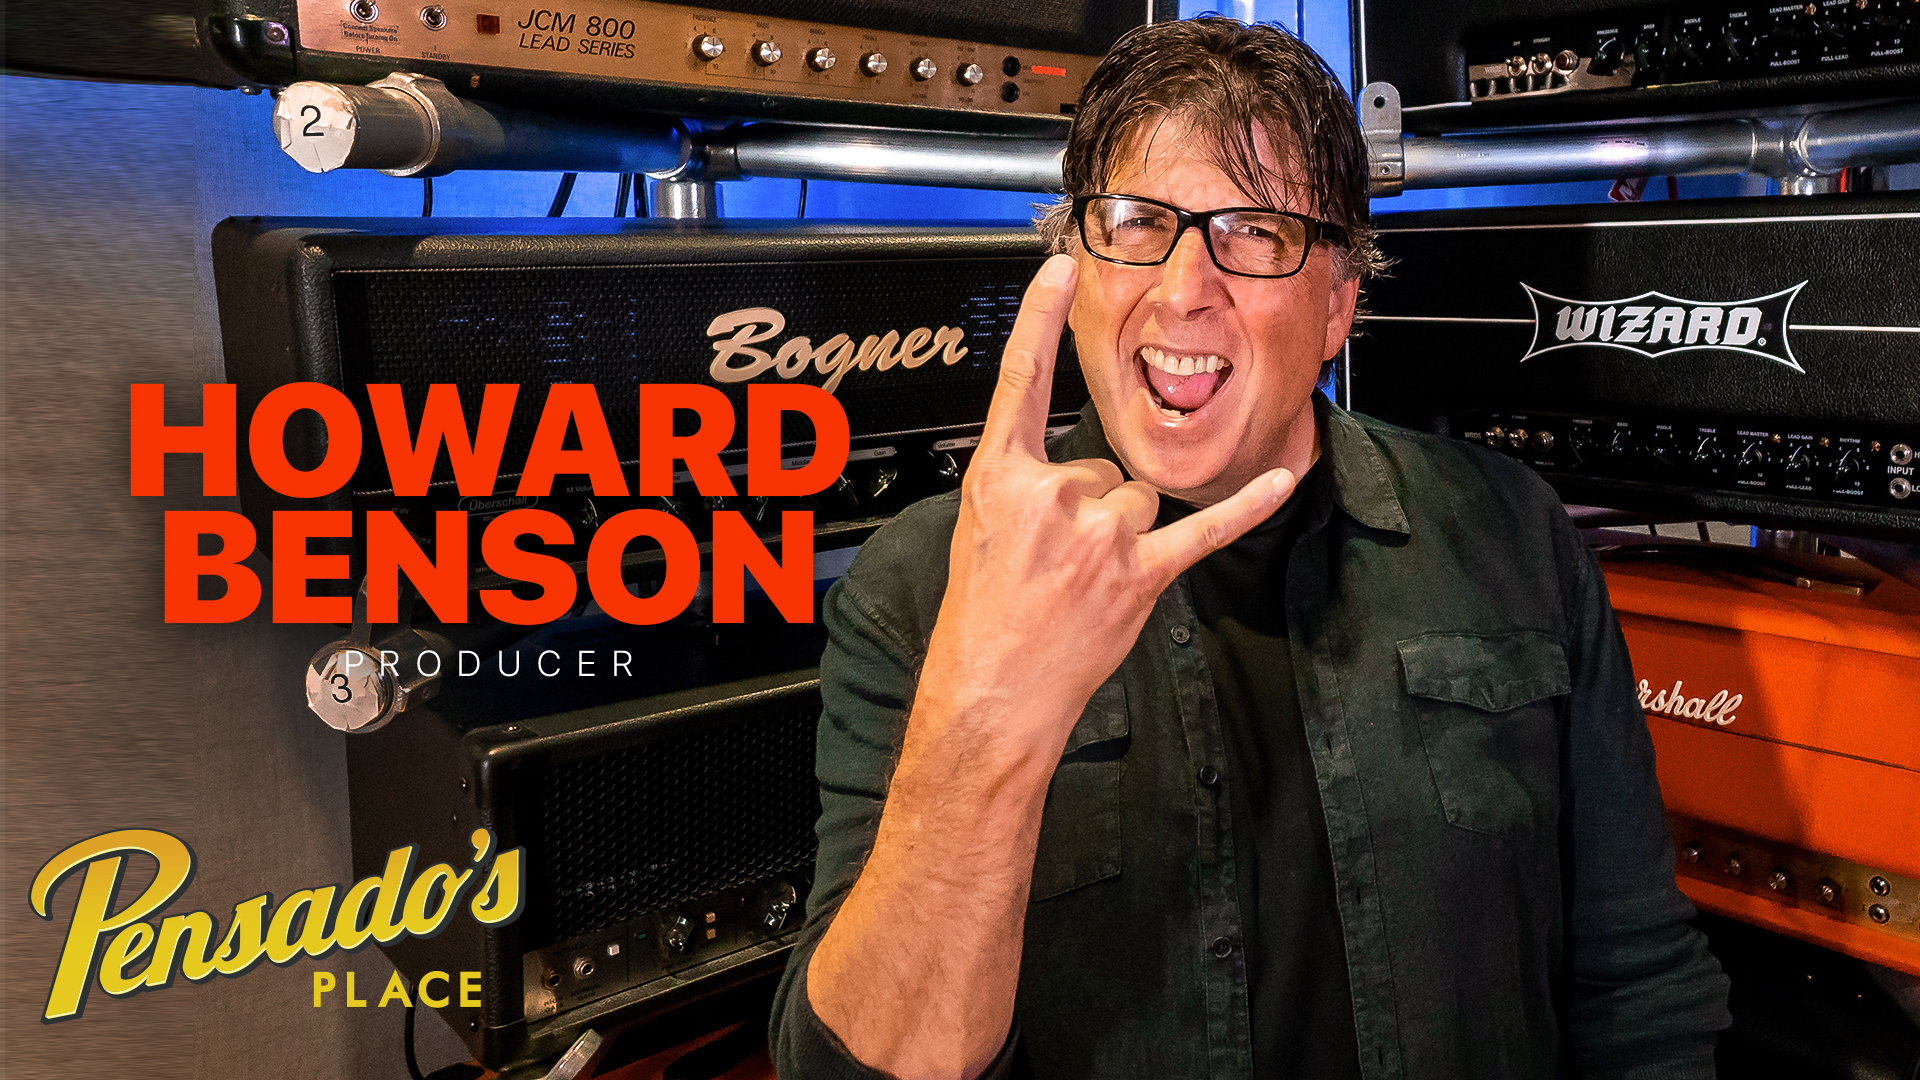 My Chemical Romance Producer, Howard Benson